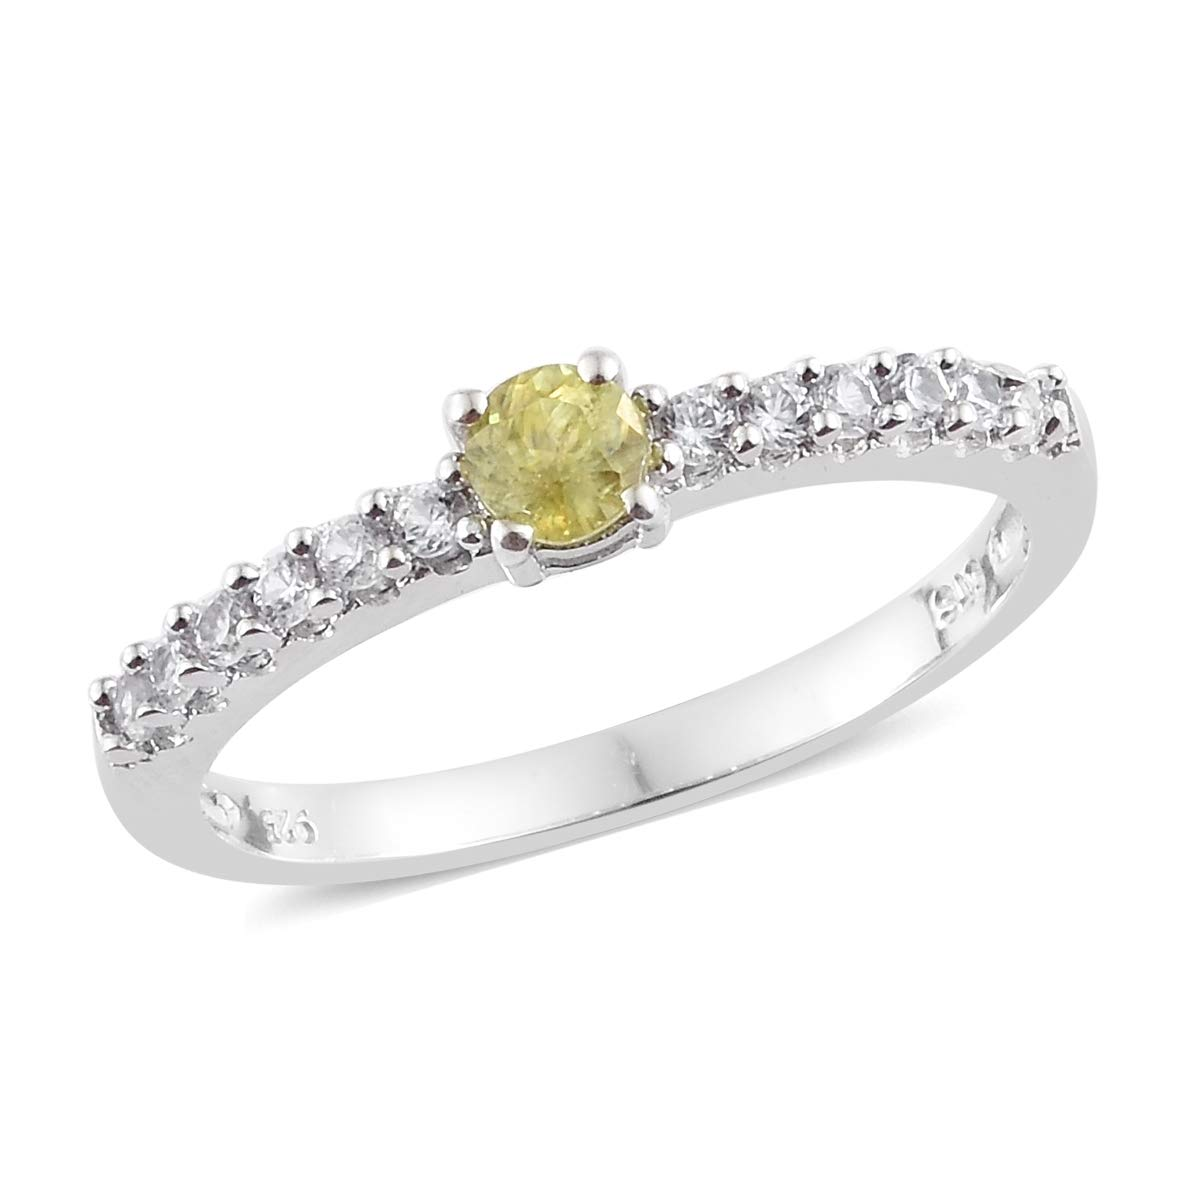 925 Sterling Silver Platinum Plated Round Sphene, Zircon Fashion Ring for Women Size 5 Cttw 0.6